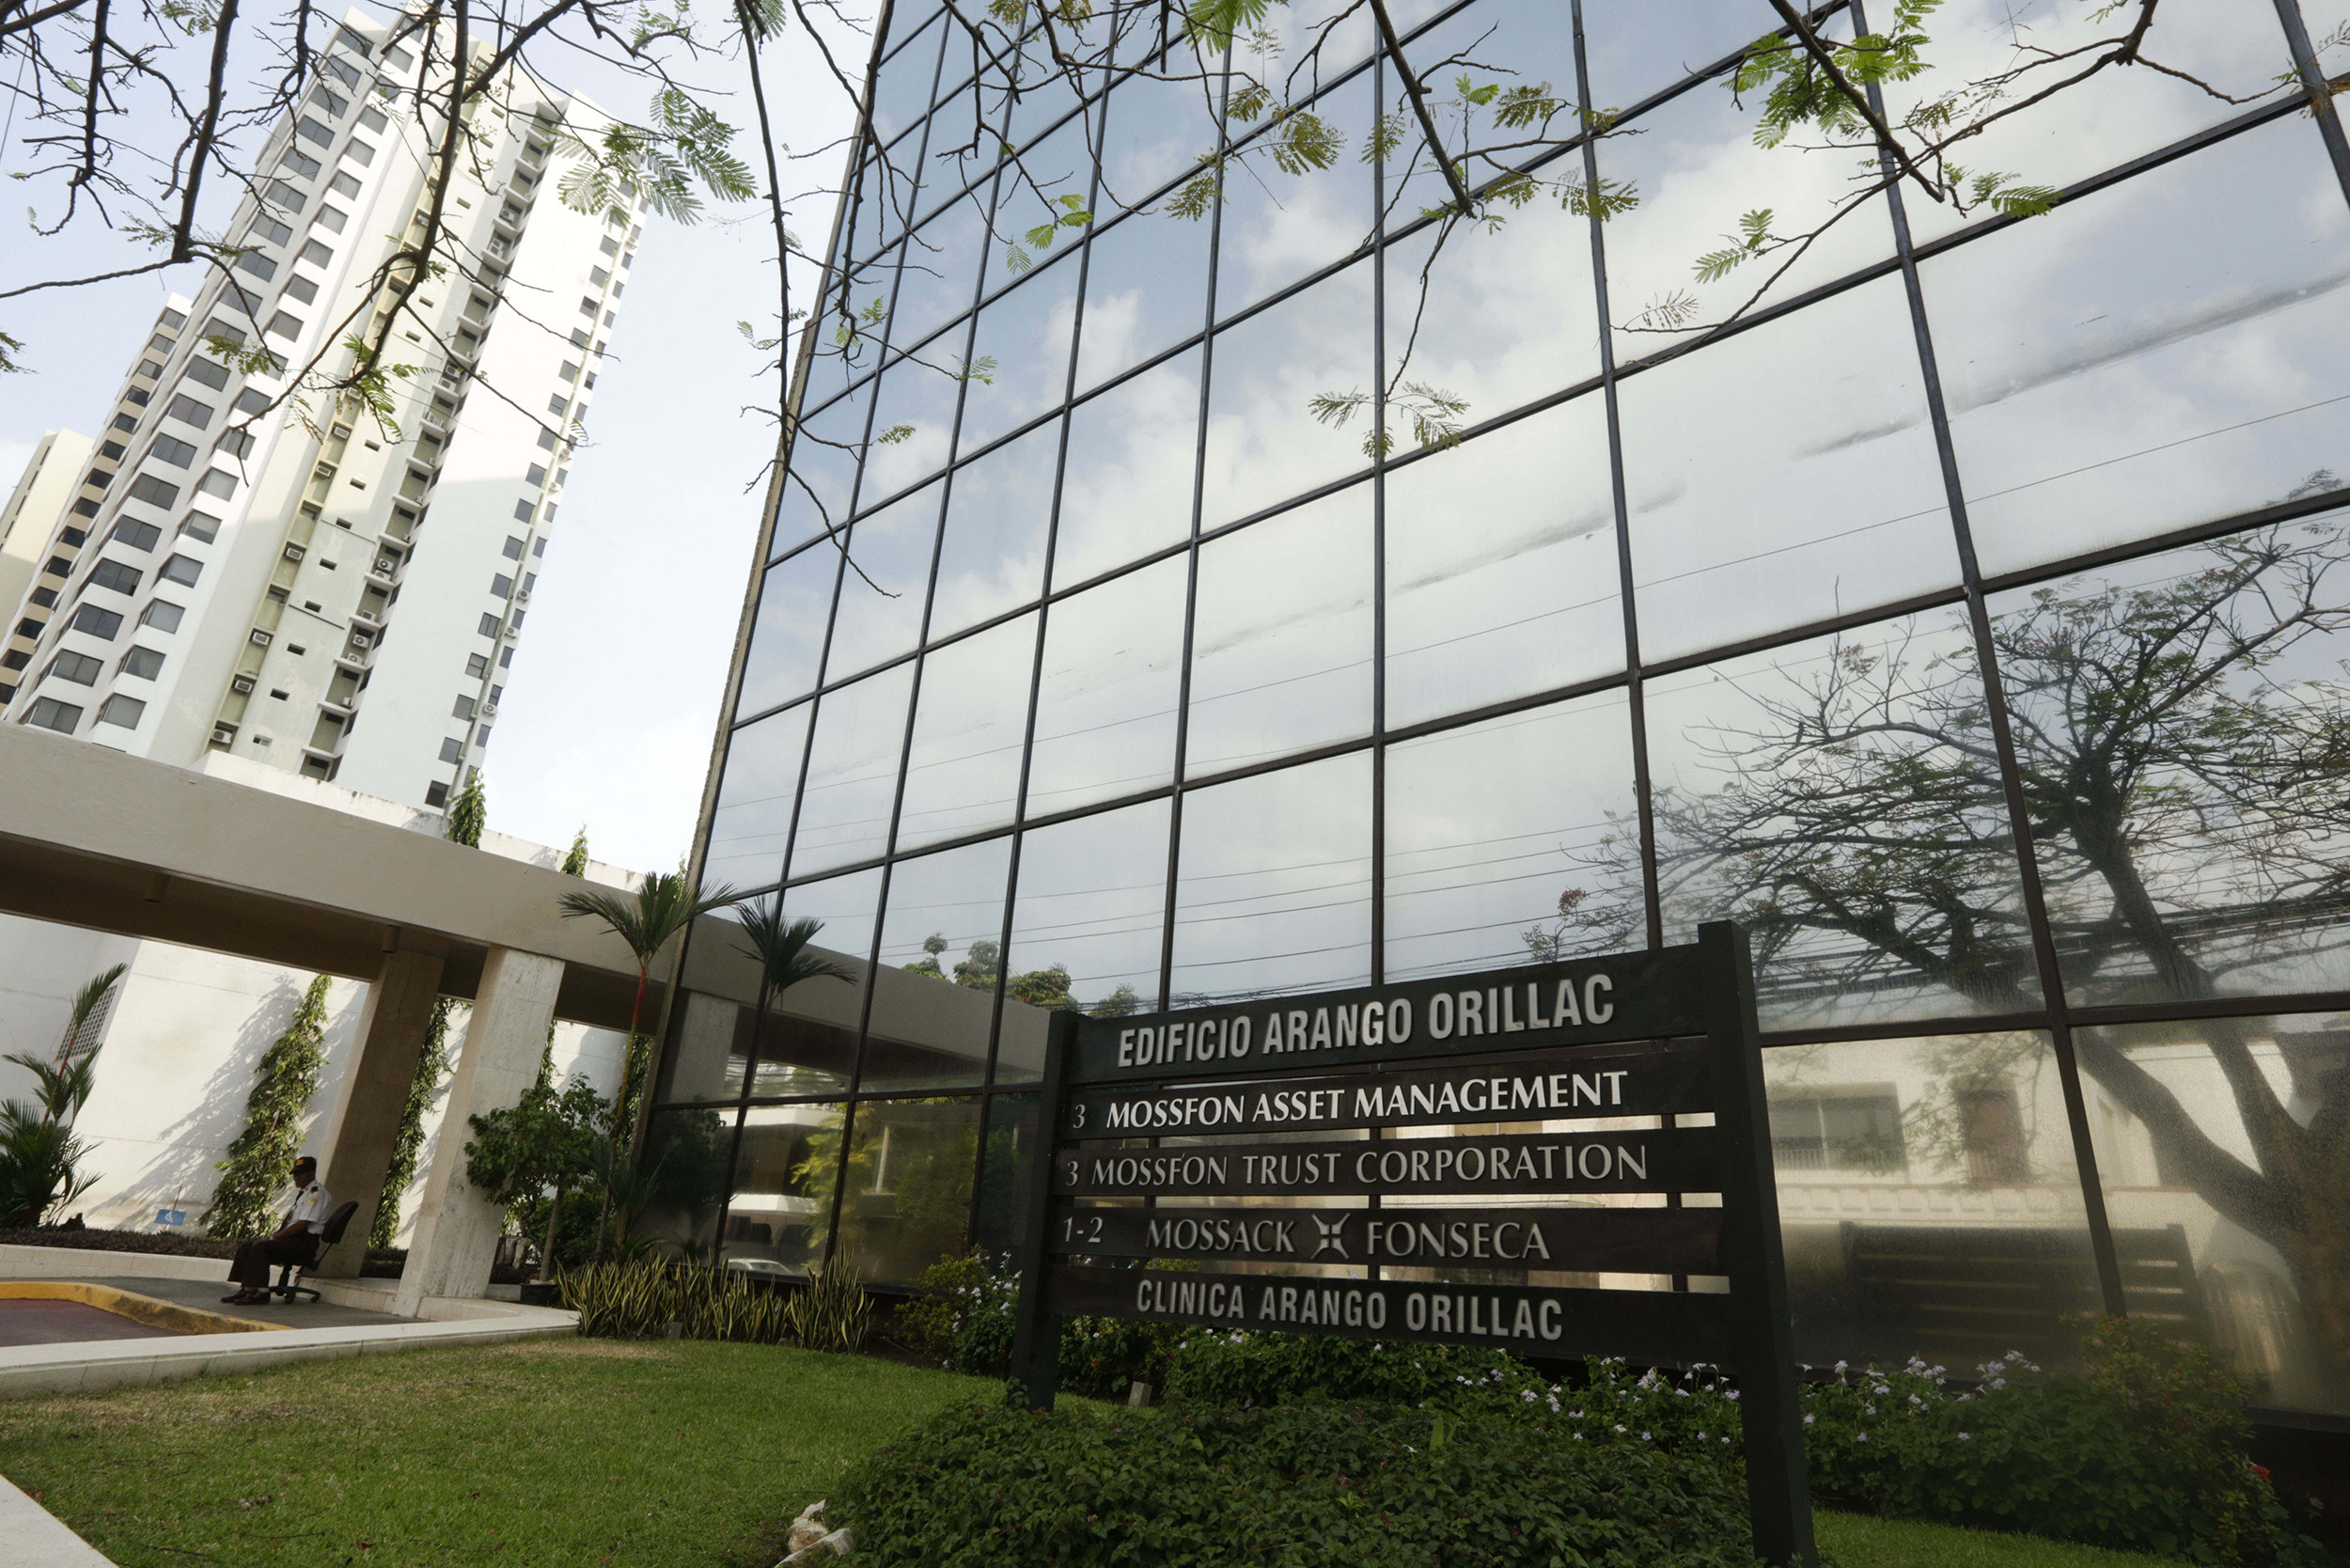 A marquee of the Arango Orillac Building lists the Mossack Fonseca law firm in Panama City on April 3, 2016.